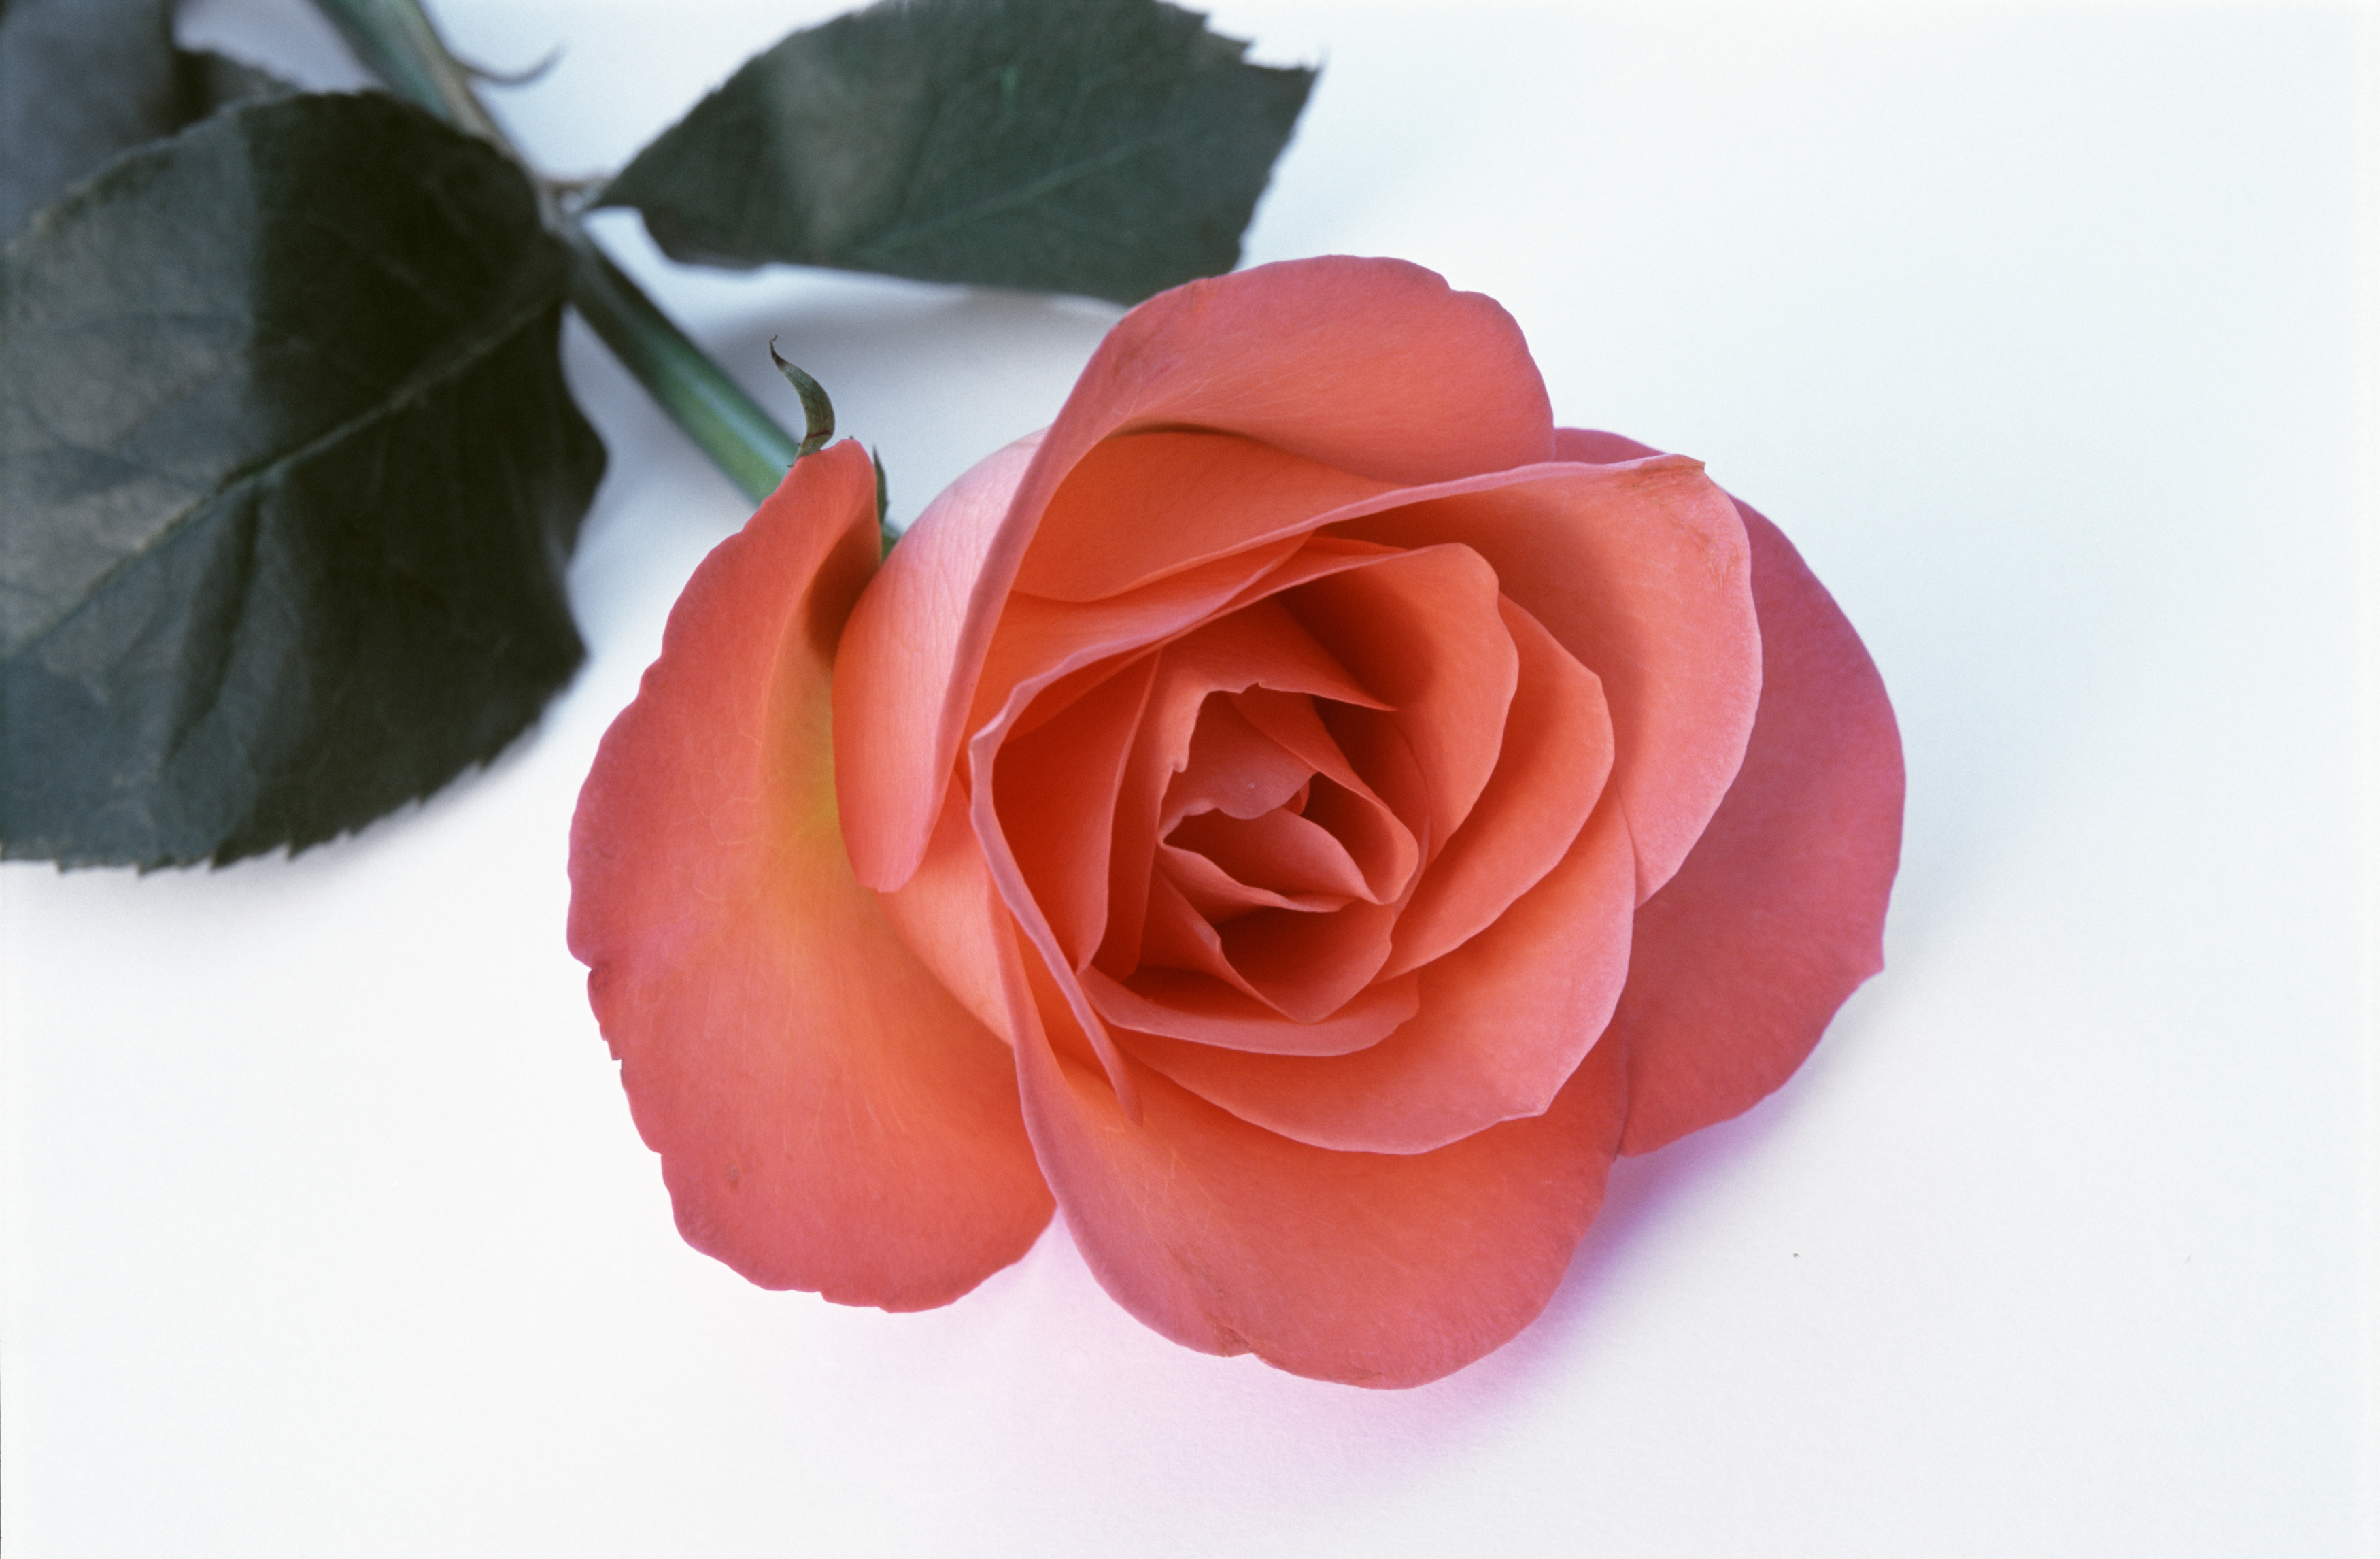 Free Image Of Single Romantic Red Rose On White